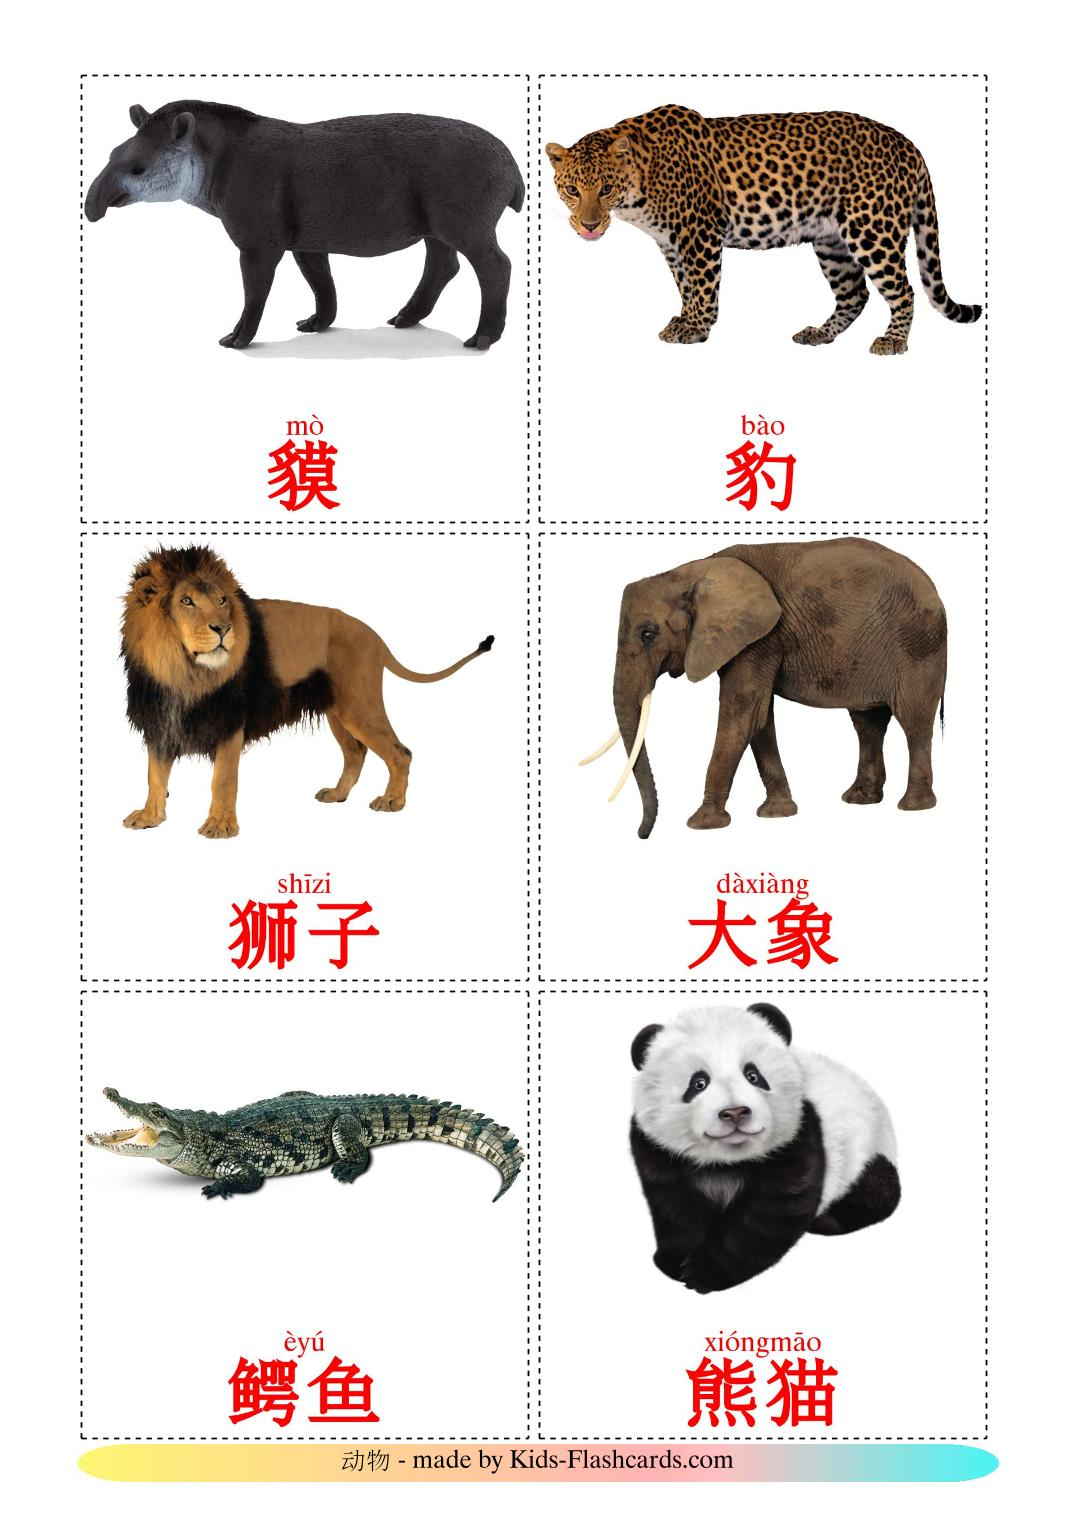 Jungle animals - 21 Free Printable chinese(Simplified) Flashcards